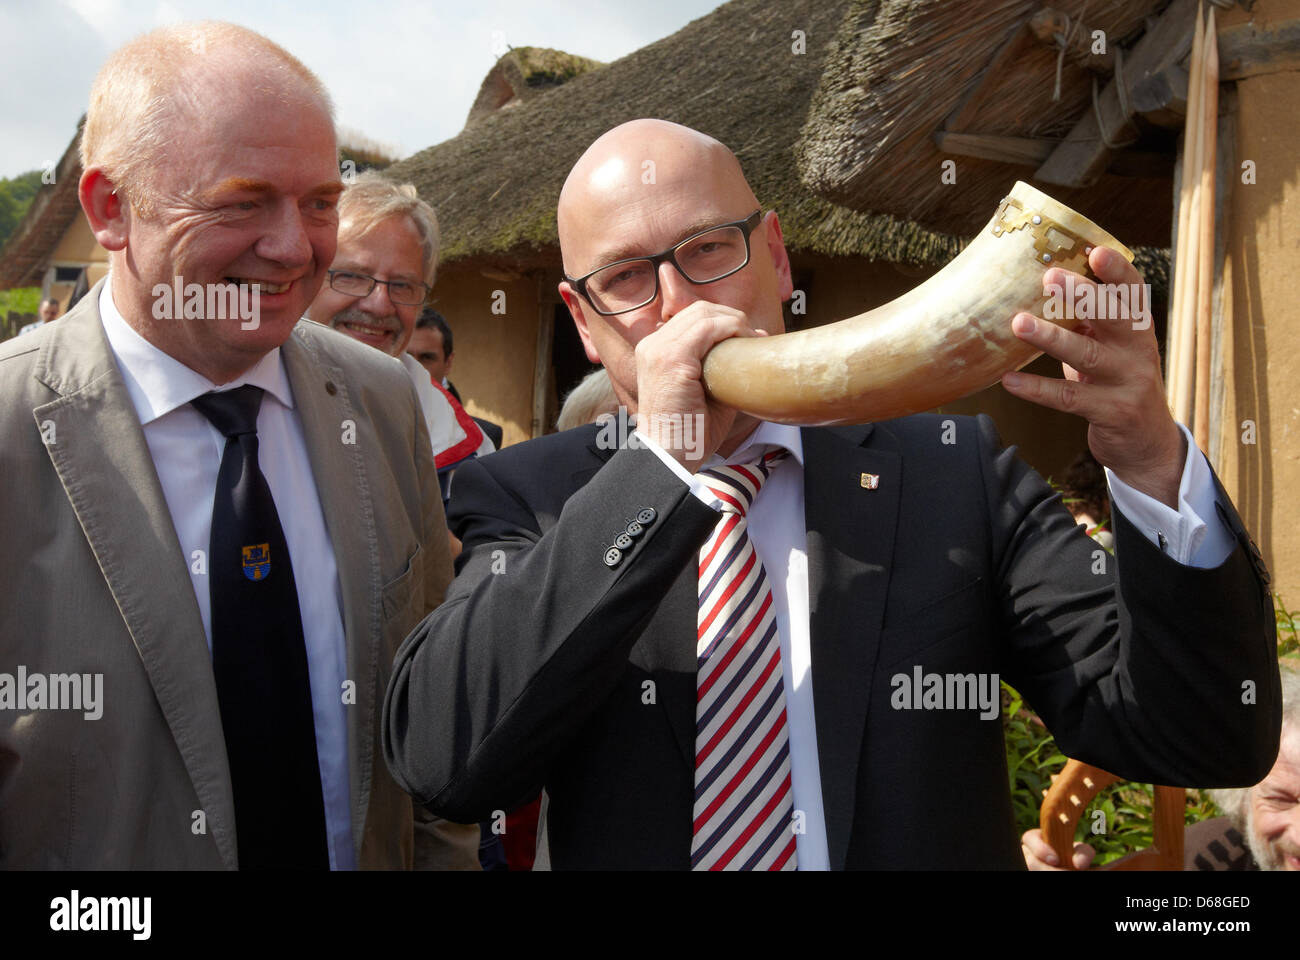 Premiere Thorsten Albig (R) blows a horn next to mayor Ralf Feddersen during the event 'Kurs Haithabu' in - Stock Image